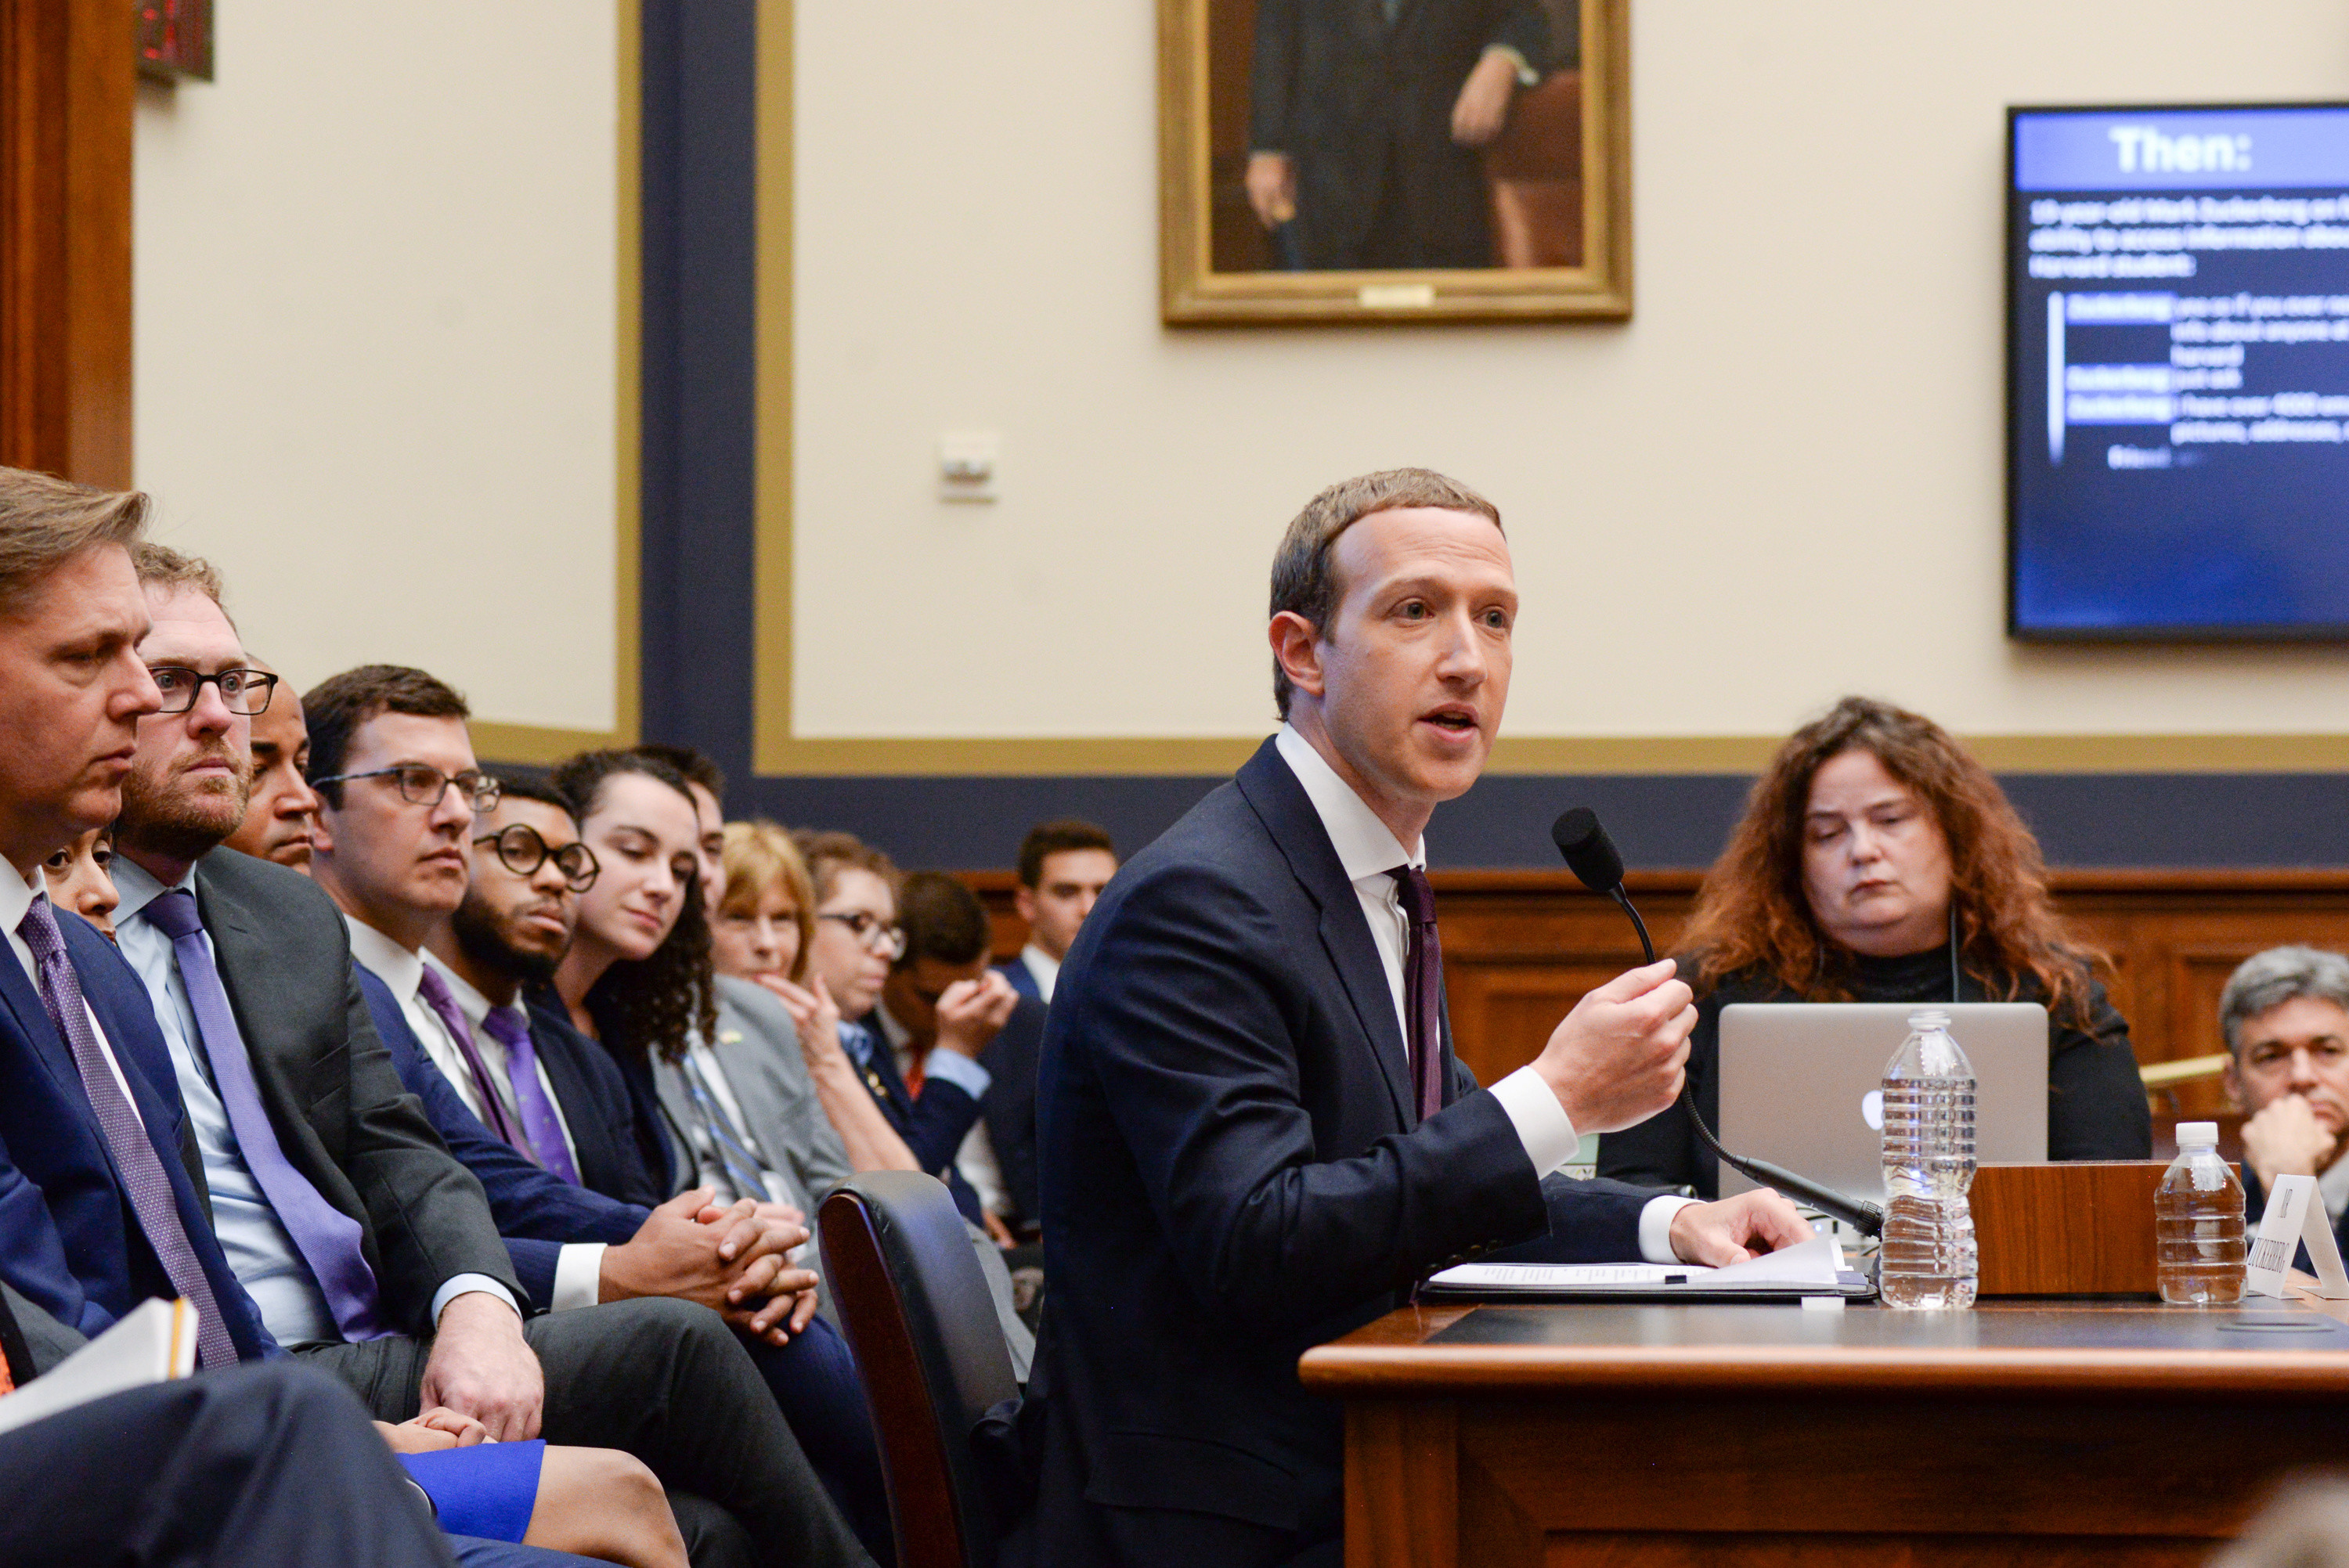 Facebook Chairman and CEO Mark Zuckerberg testifies at a House Financial Services Committee hearing in Washington, U.S., October 23, 2019. REUTERS/Erin Scott - RC17DEC6C4E0